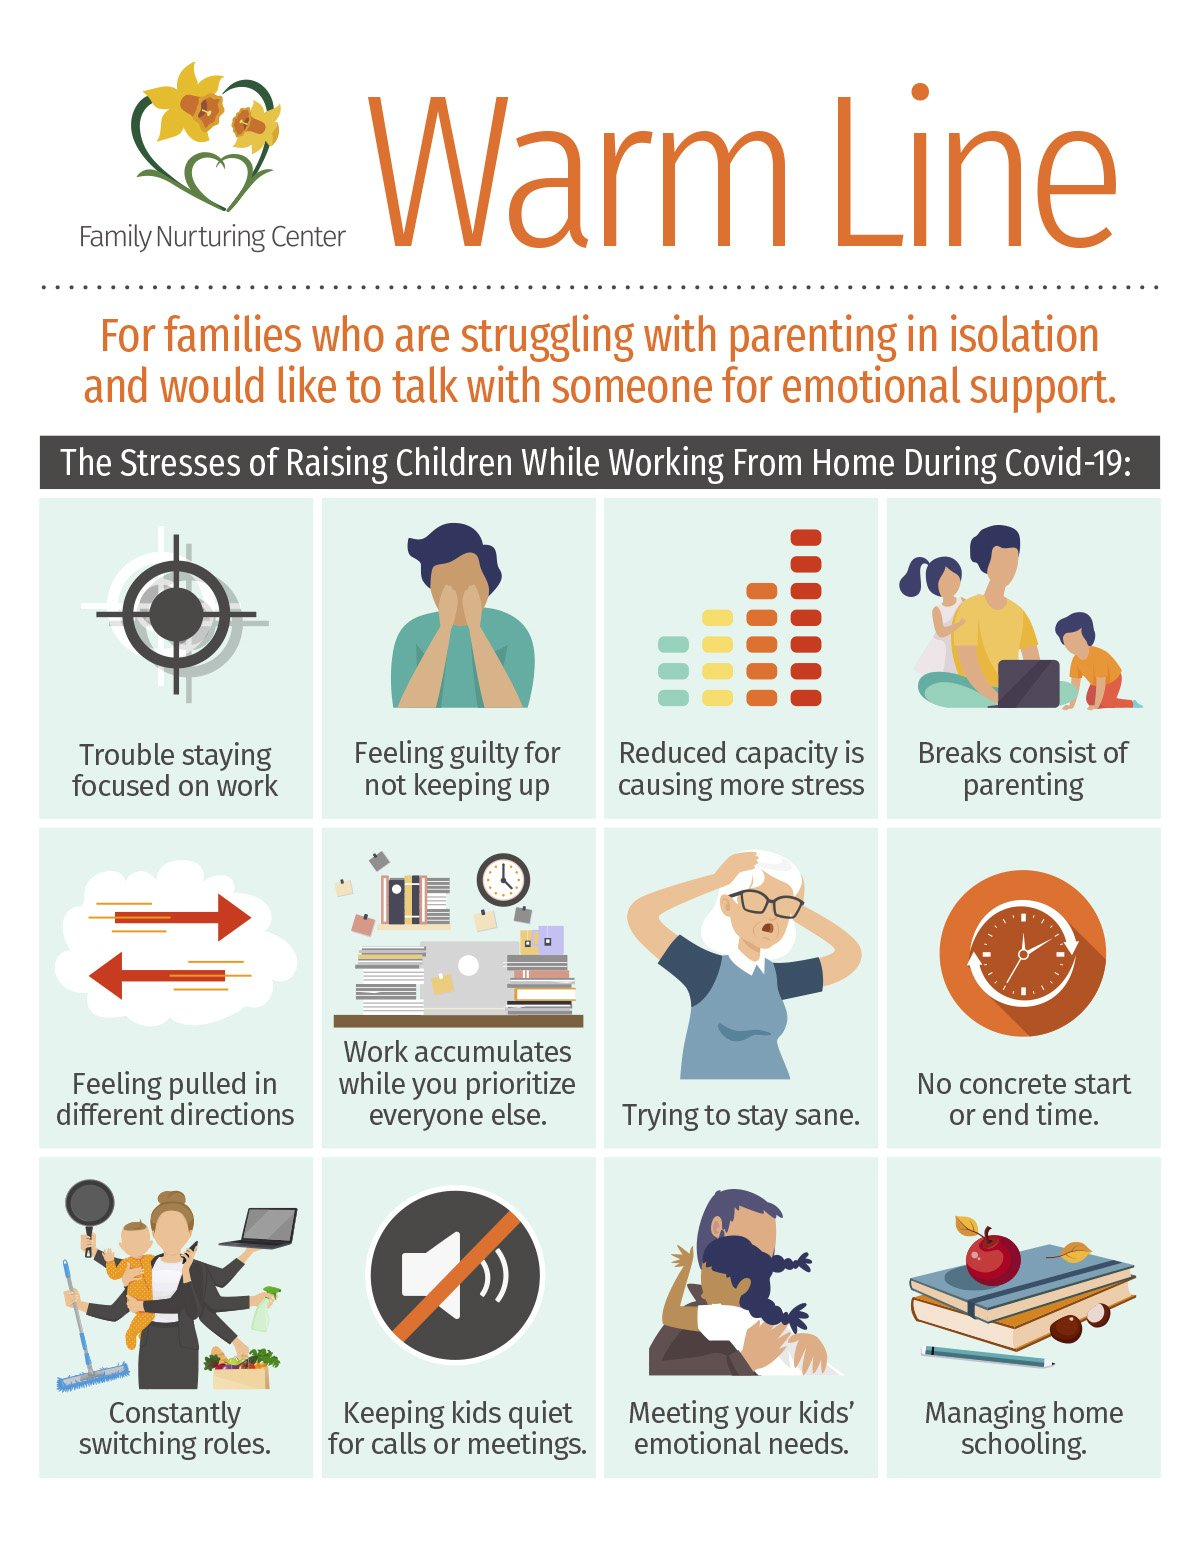 Family Nurturing Center, Warm Line, for Emotional Support